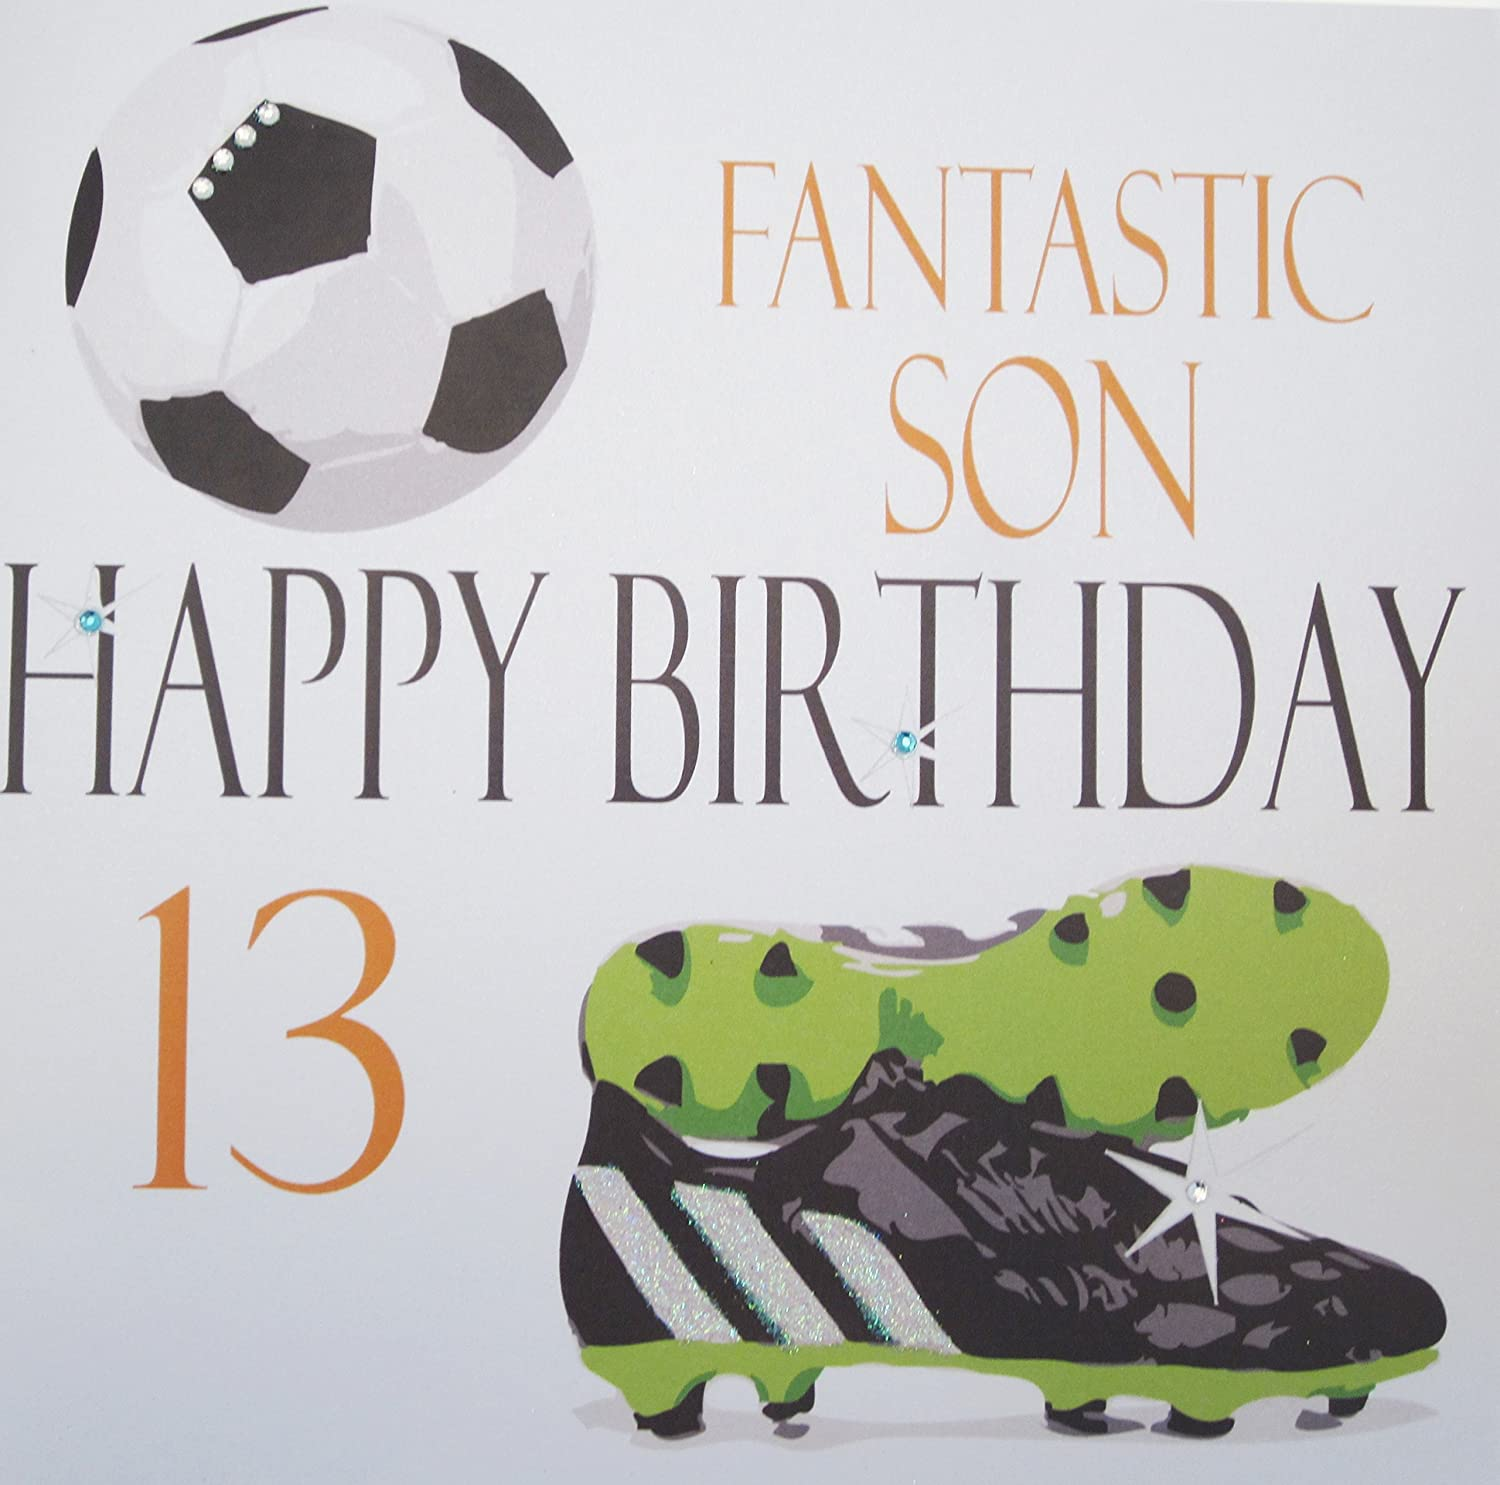 "White Cotton Cards Football ""Fantastic Son Happy Birthday 13"